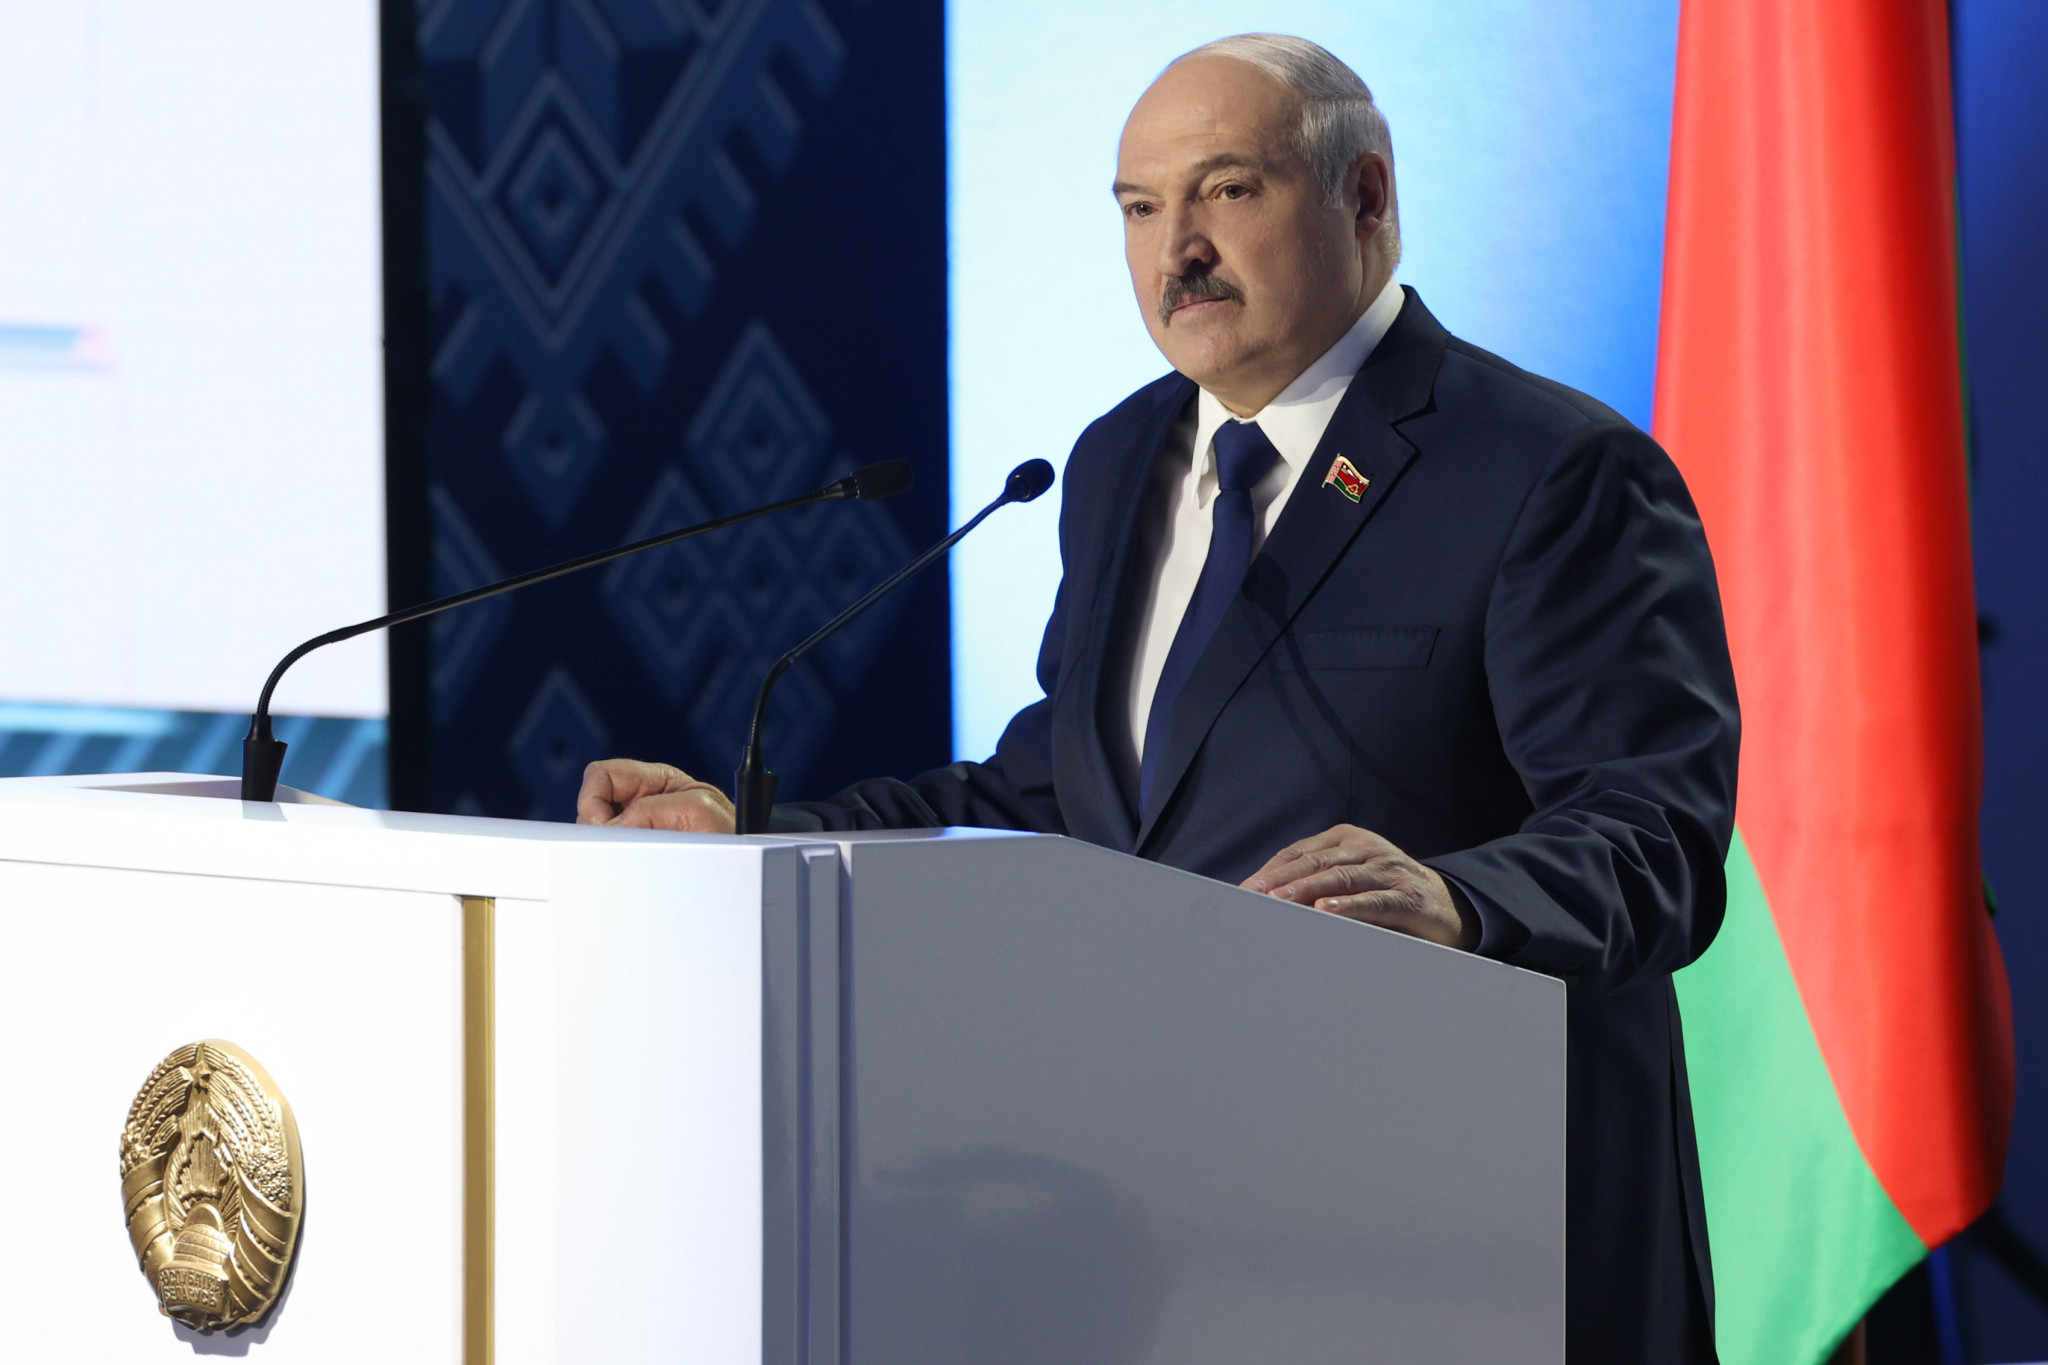 Belarus President Alexander Lukashenko was sanctioned by the IOC in December ©Getty Images